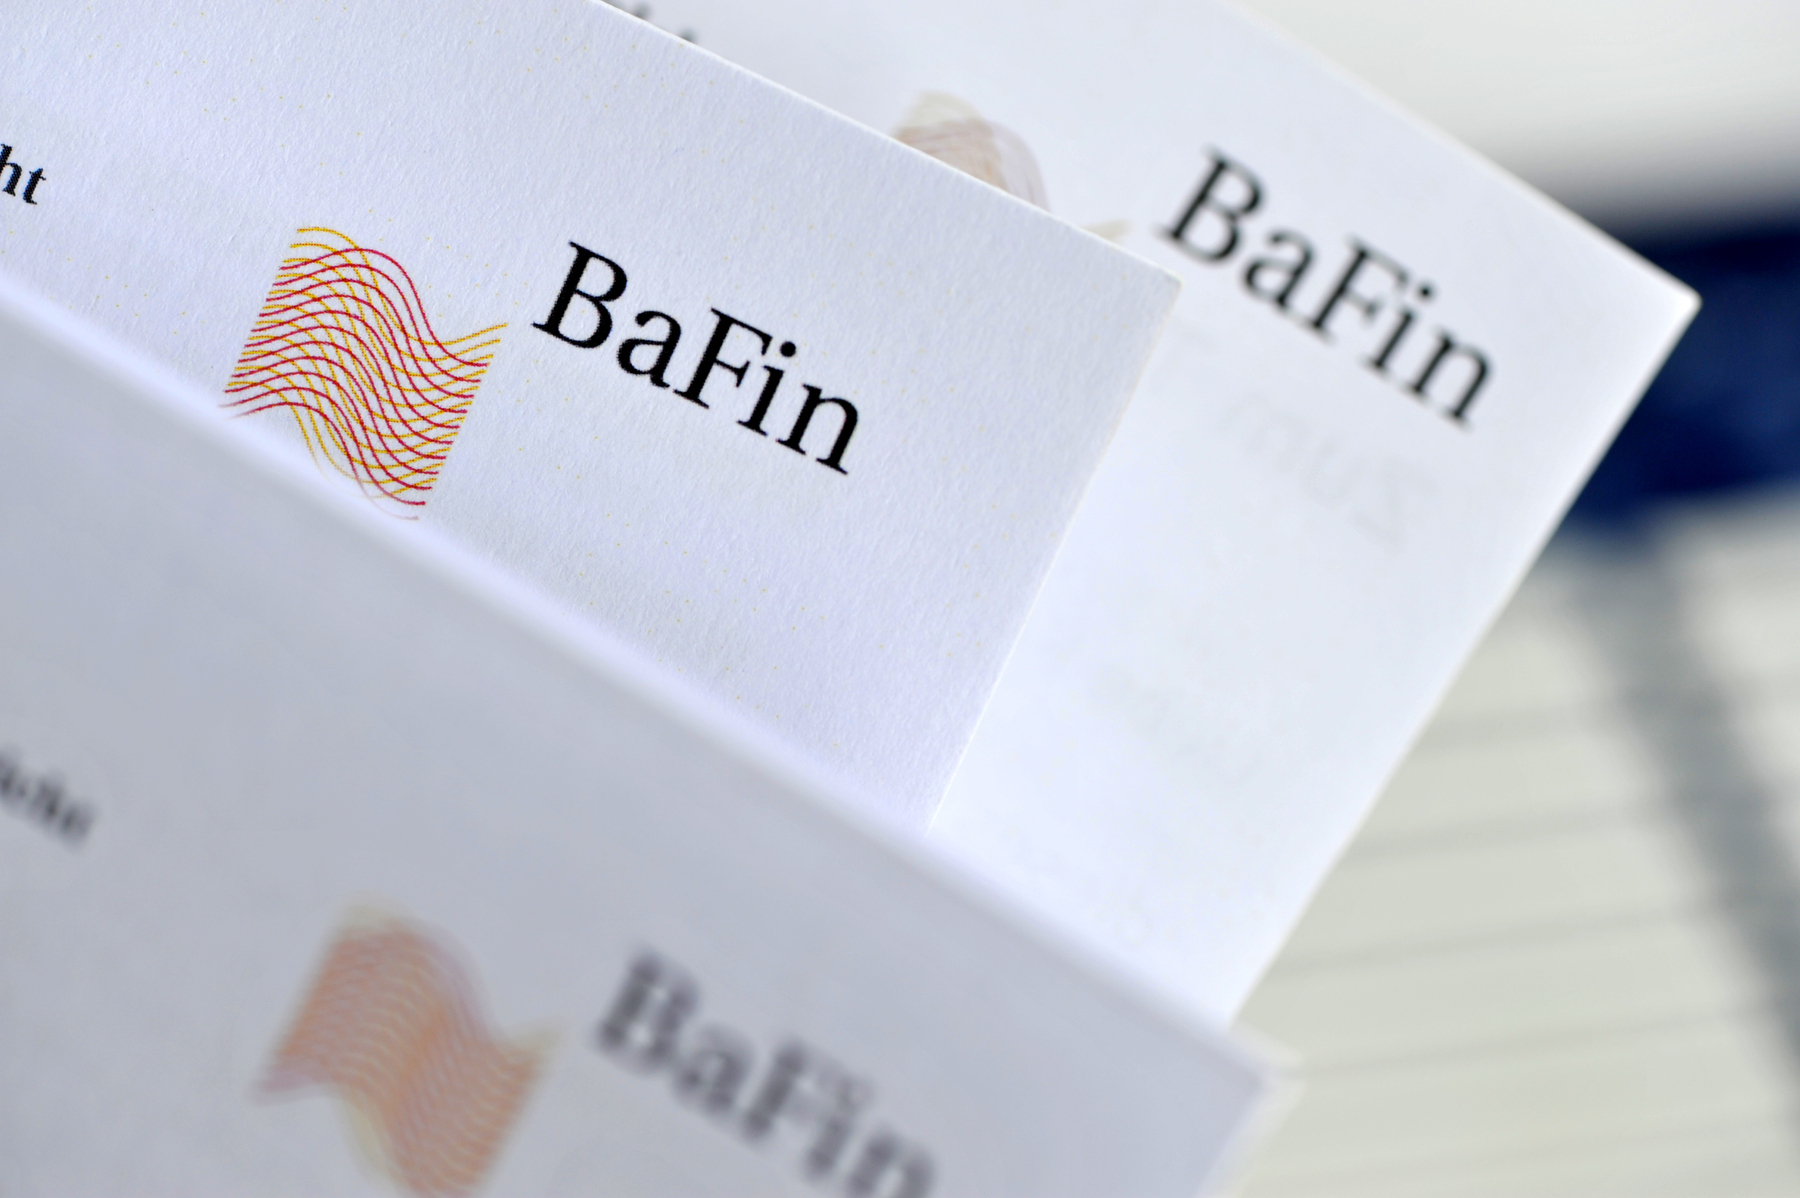 Linus Capital receives BaFin registration and additional EUR 50 million investment capital